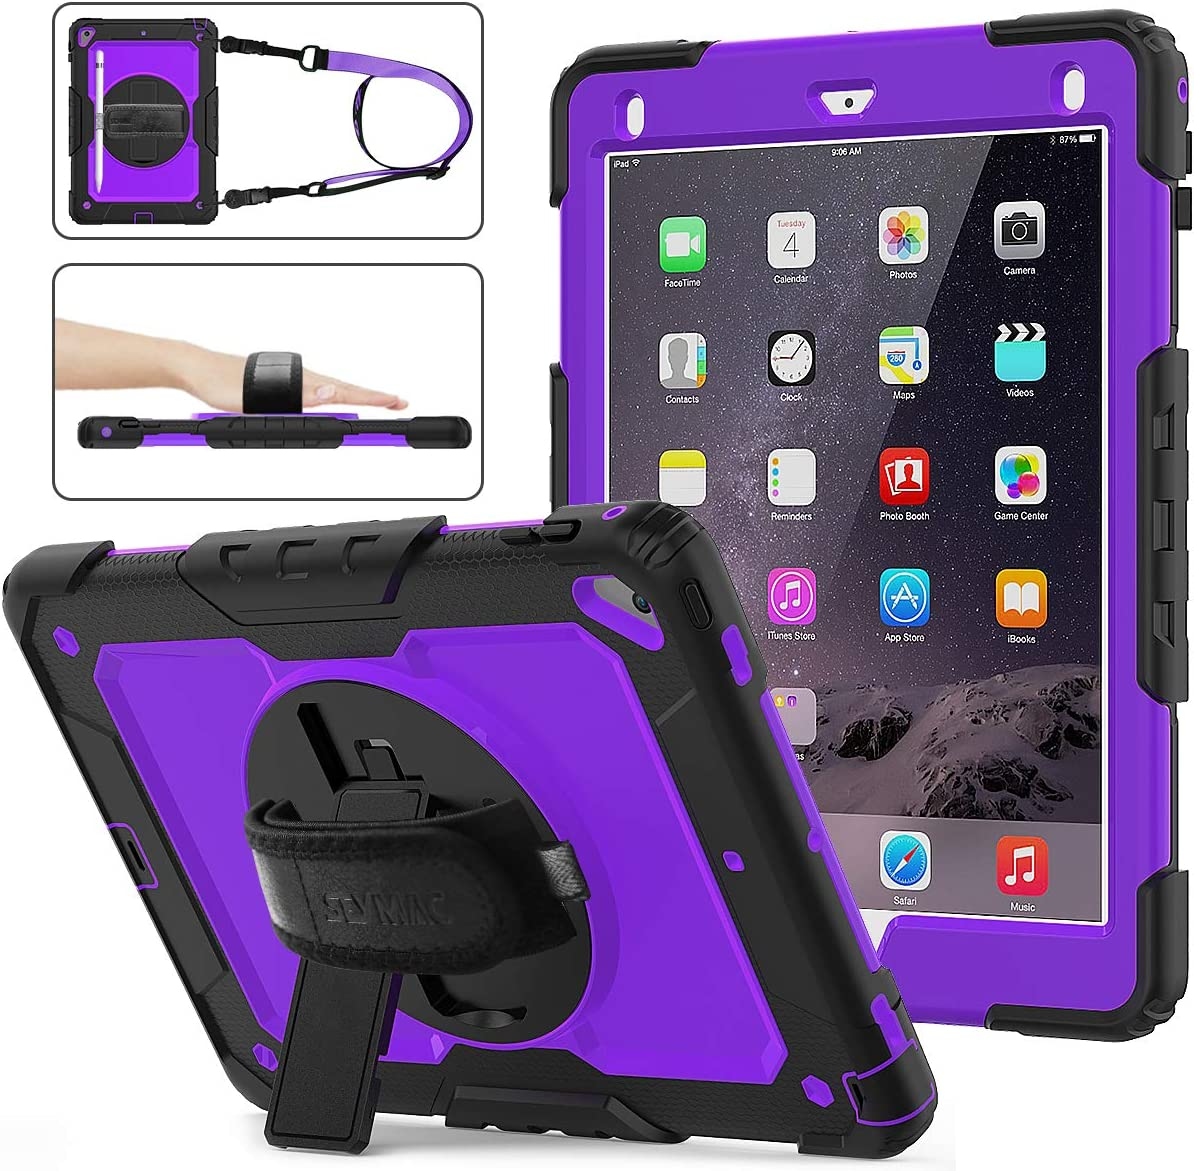 iPad 6th/5th Generation Case, SEYMAC Stock [Full-Body] Drop Proof Armor Case with 360 Rotating Stand [Pencil Holder][Screen Protector] Hand Strap for iPad 6th/5th/ Air 2/ Pro 9.7 (Purple+Black)